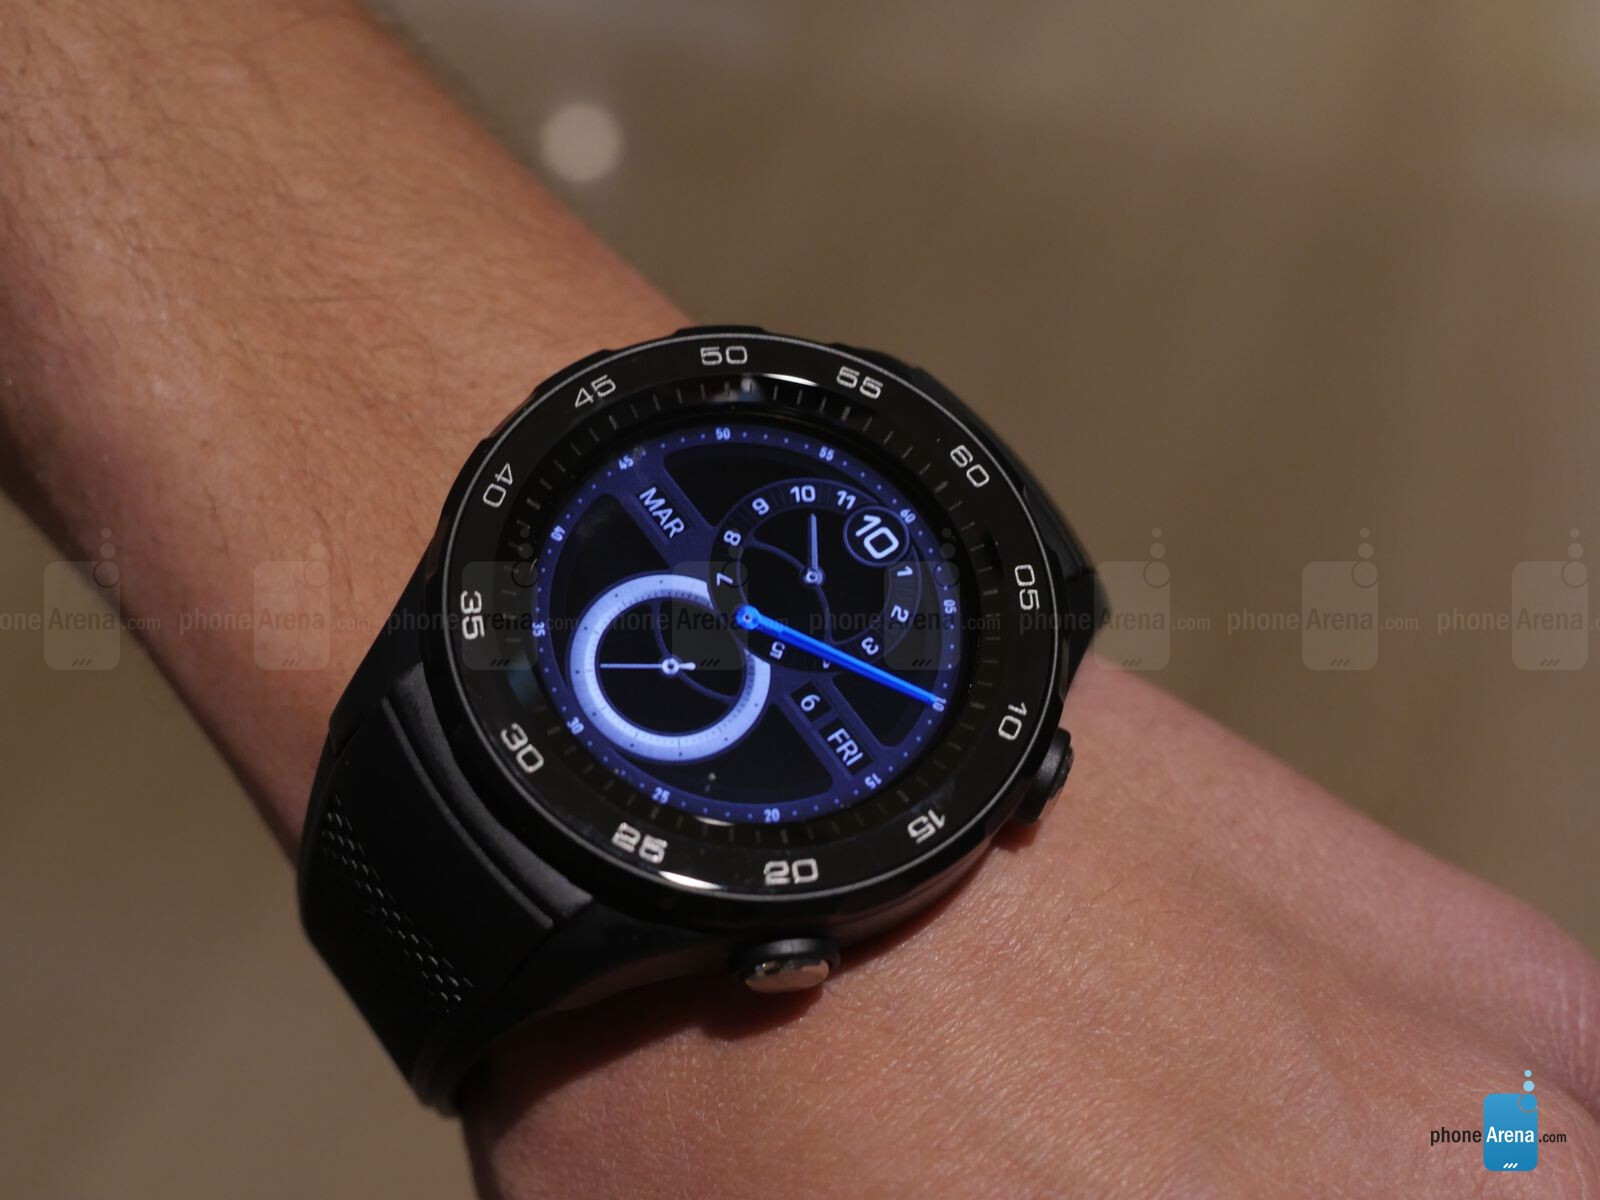 Huawei Watch 2 hands-on: My wrists are way too small for that | PhoneArena reviews